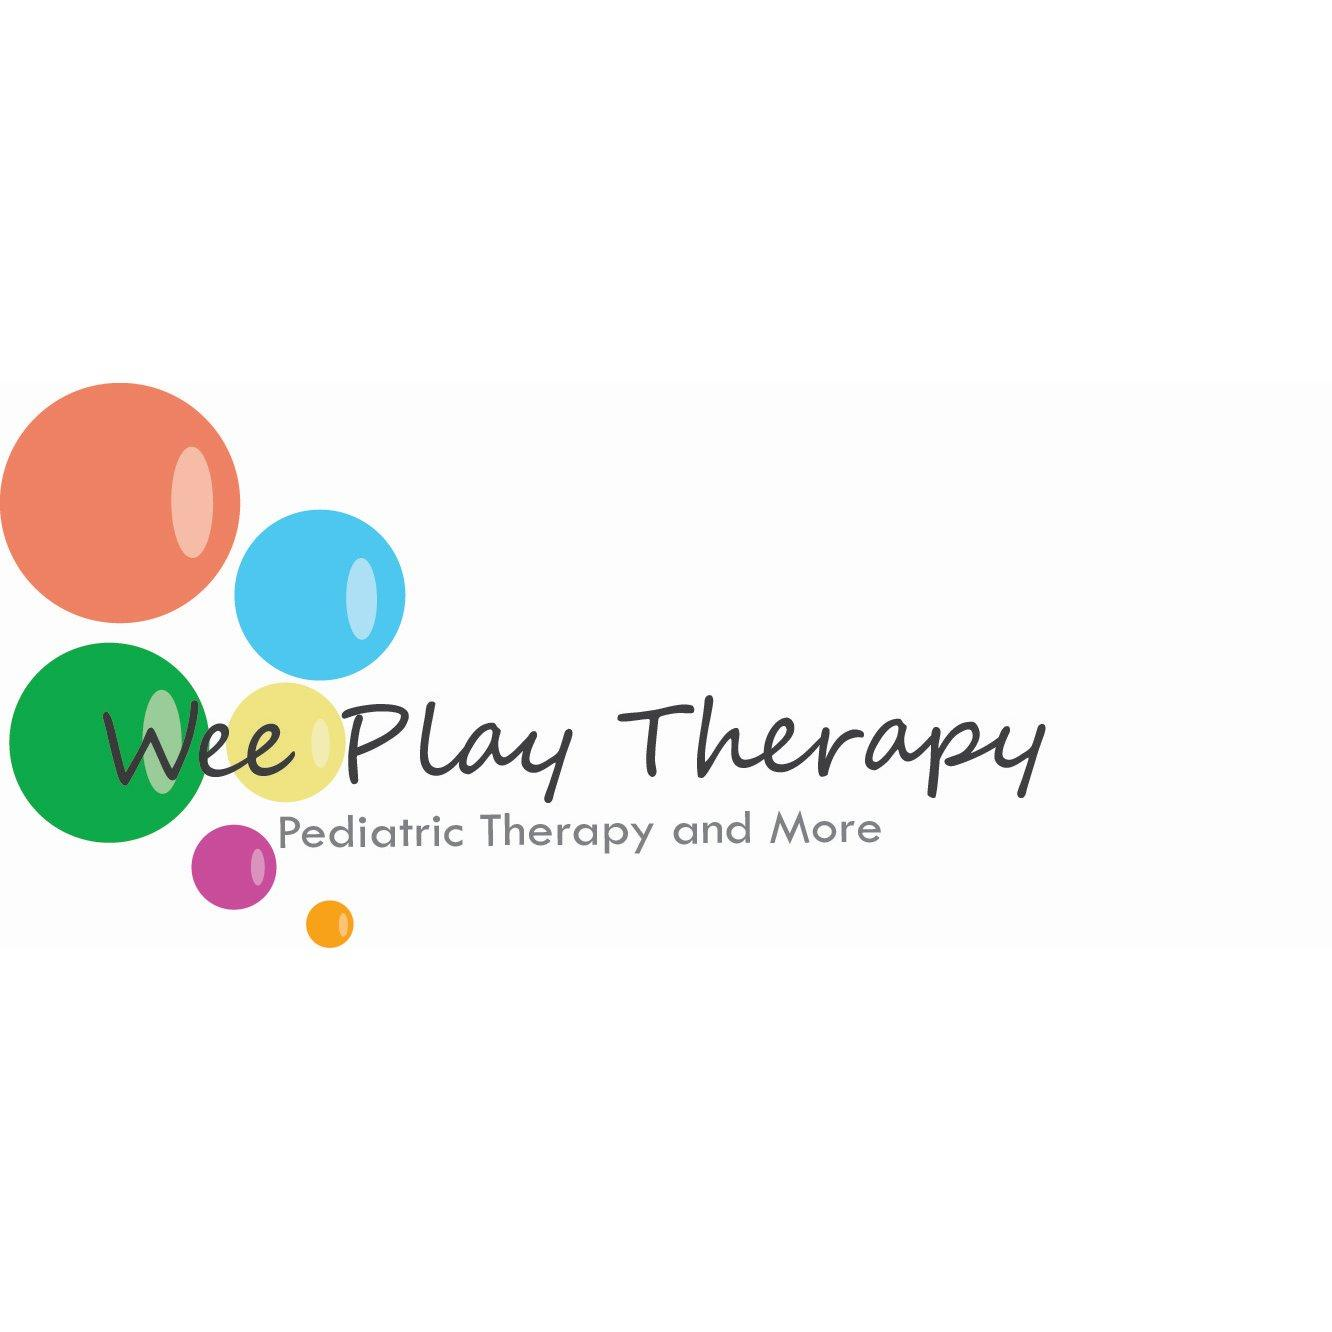 Wee Play Therapy